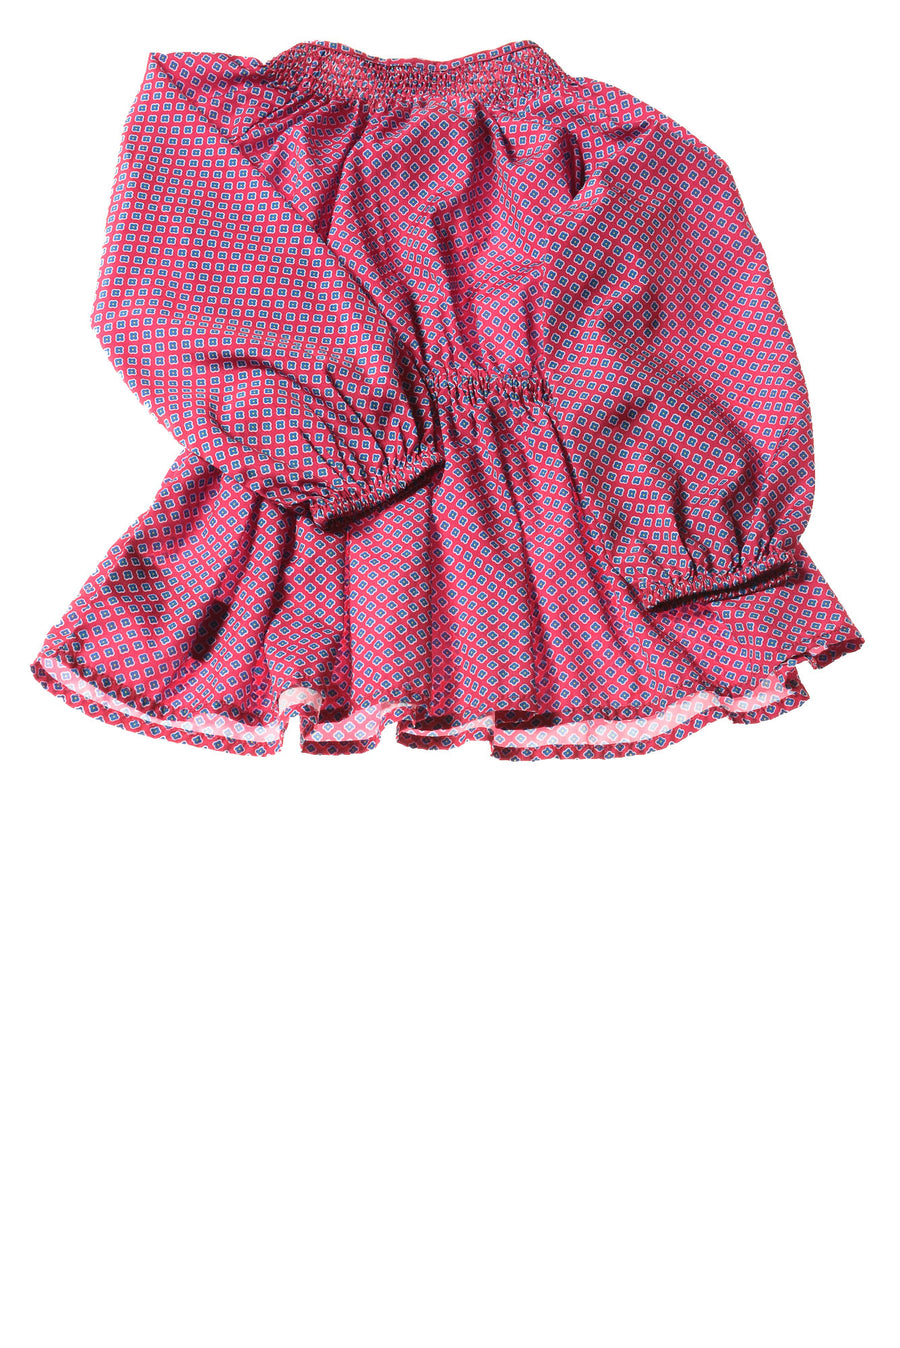 USED Ralph Lauren Baby Girl's Top 24 Months Pink / Print